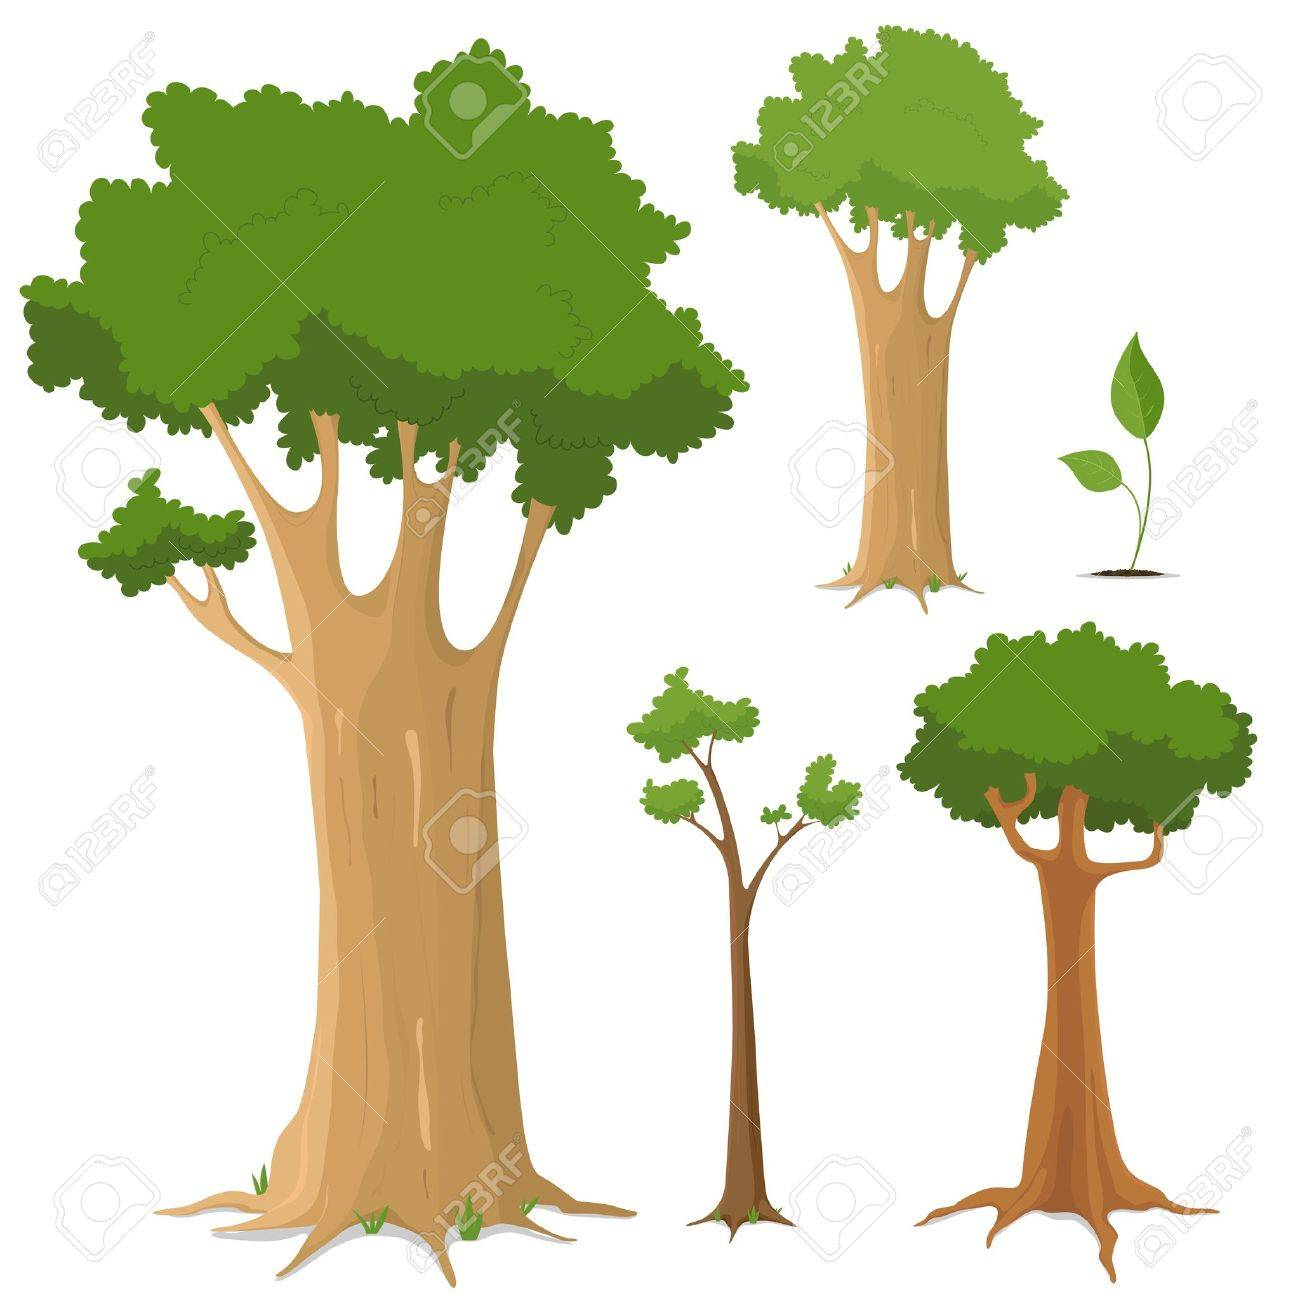 illustration of a set of variety of trees young and old royalty